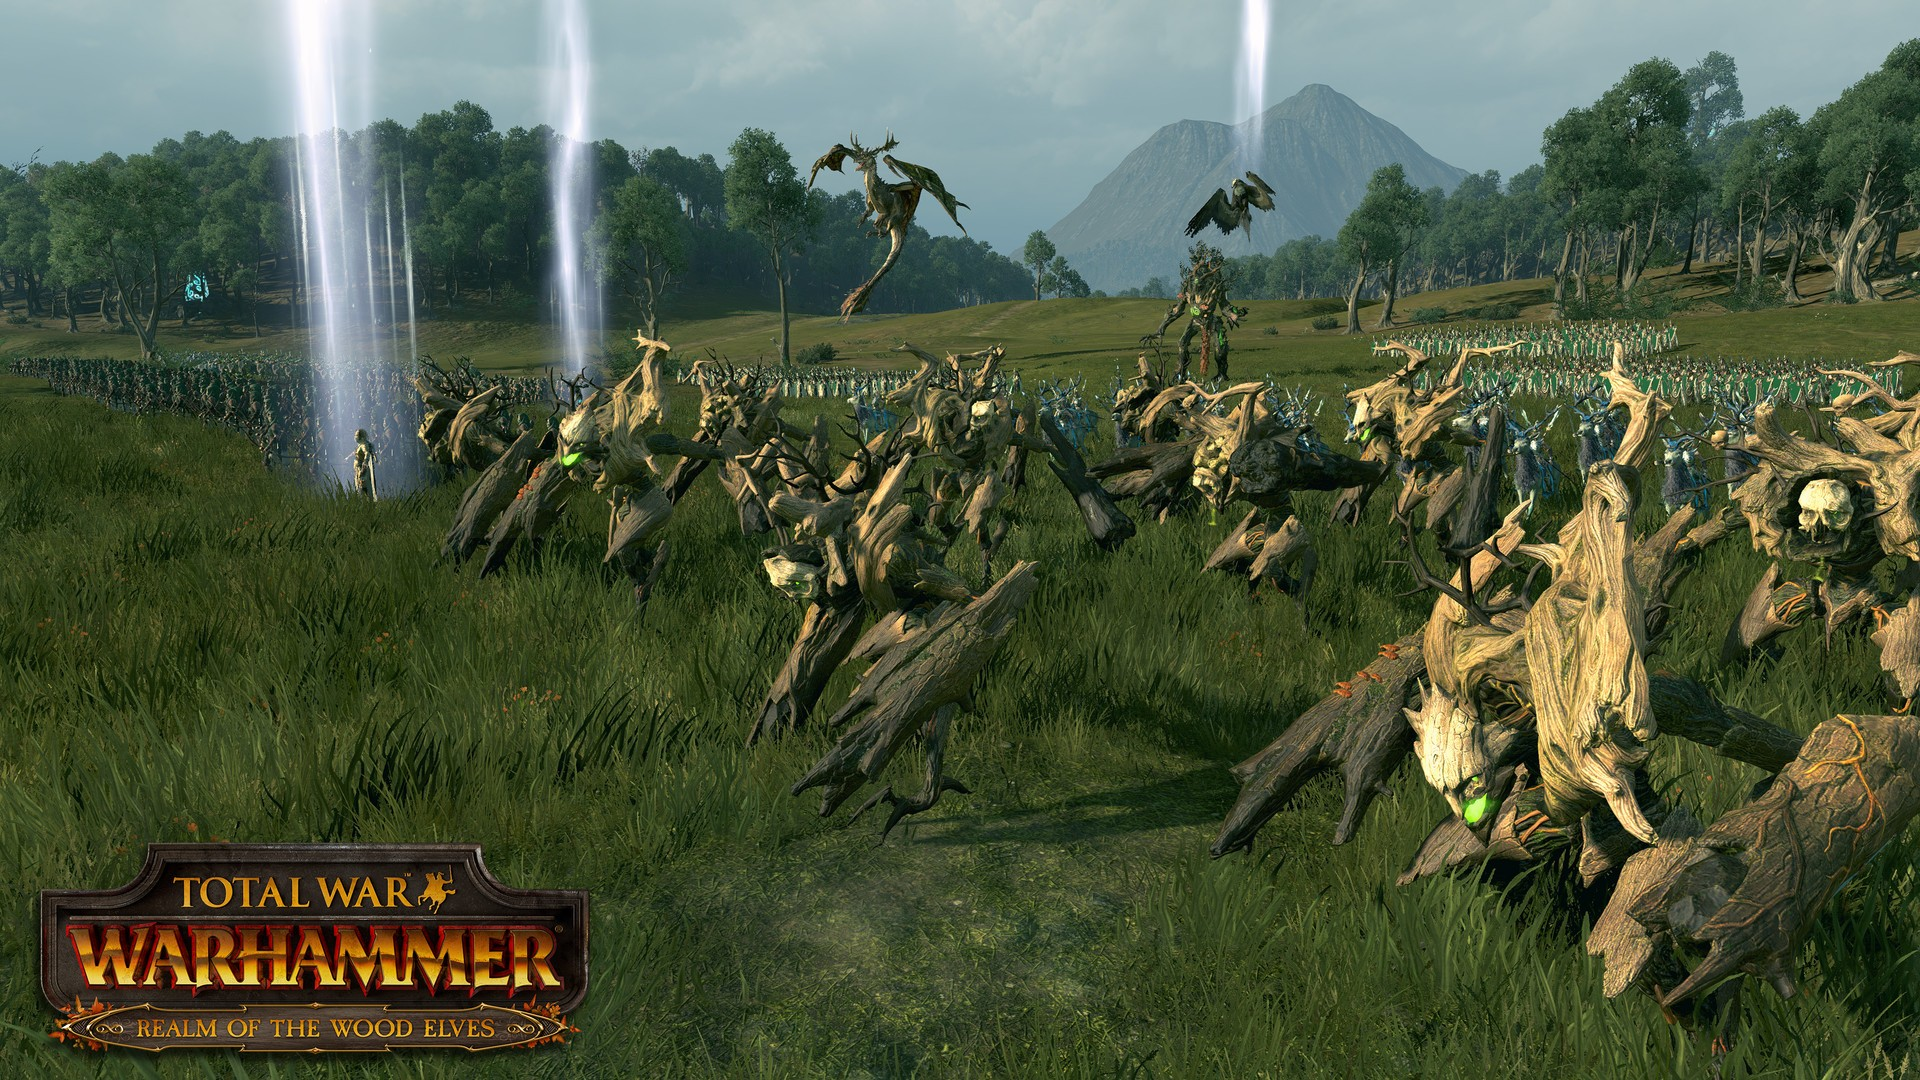 Total war: warhammer - realm of the wood elves download free